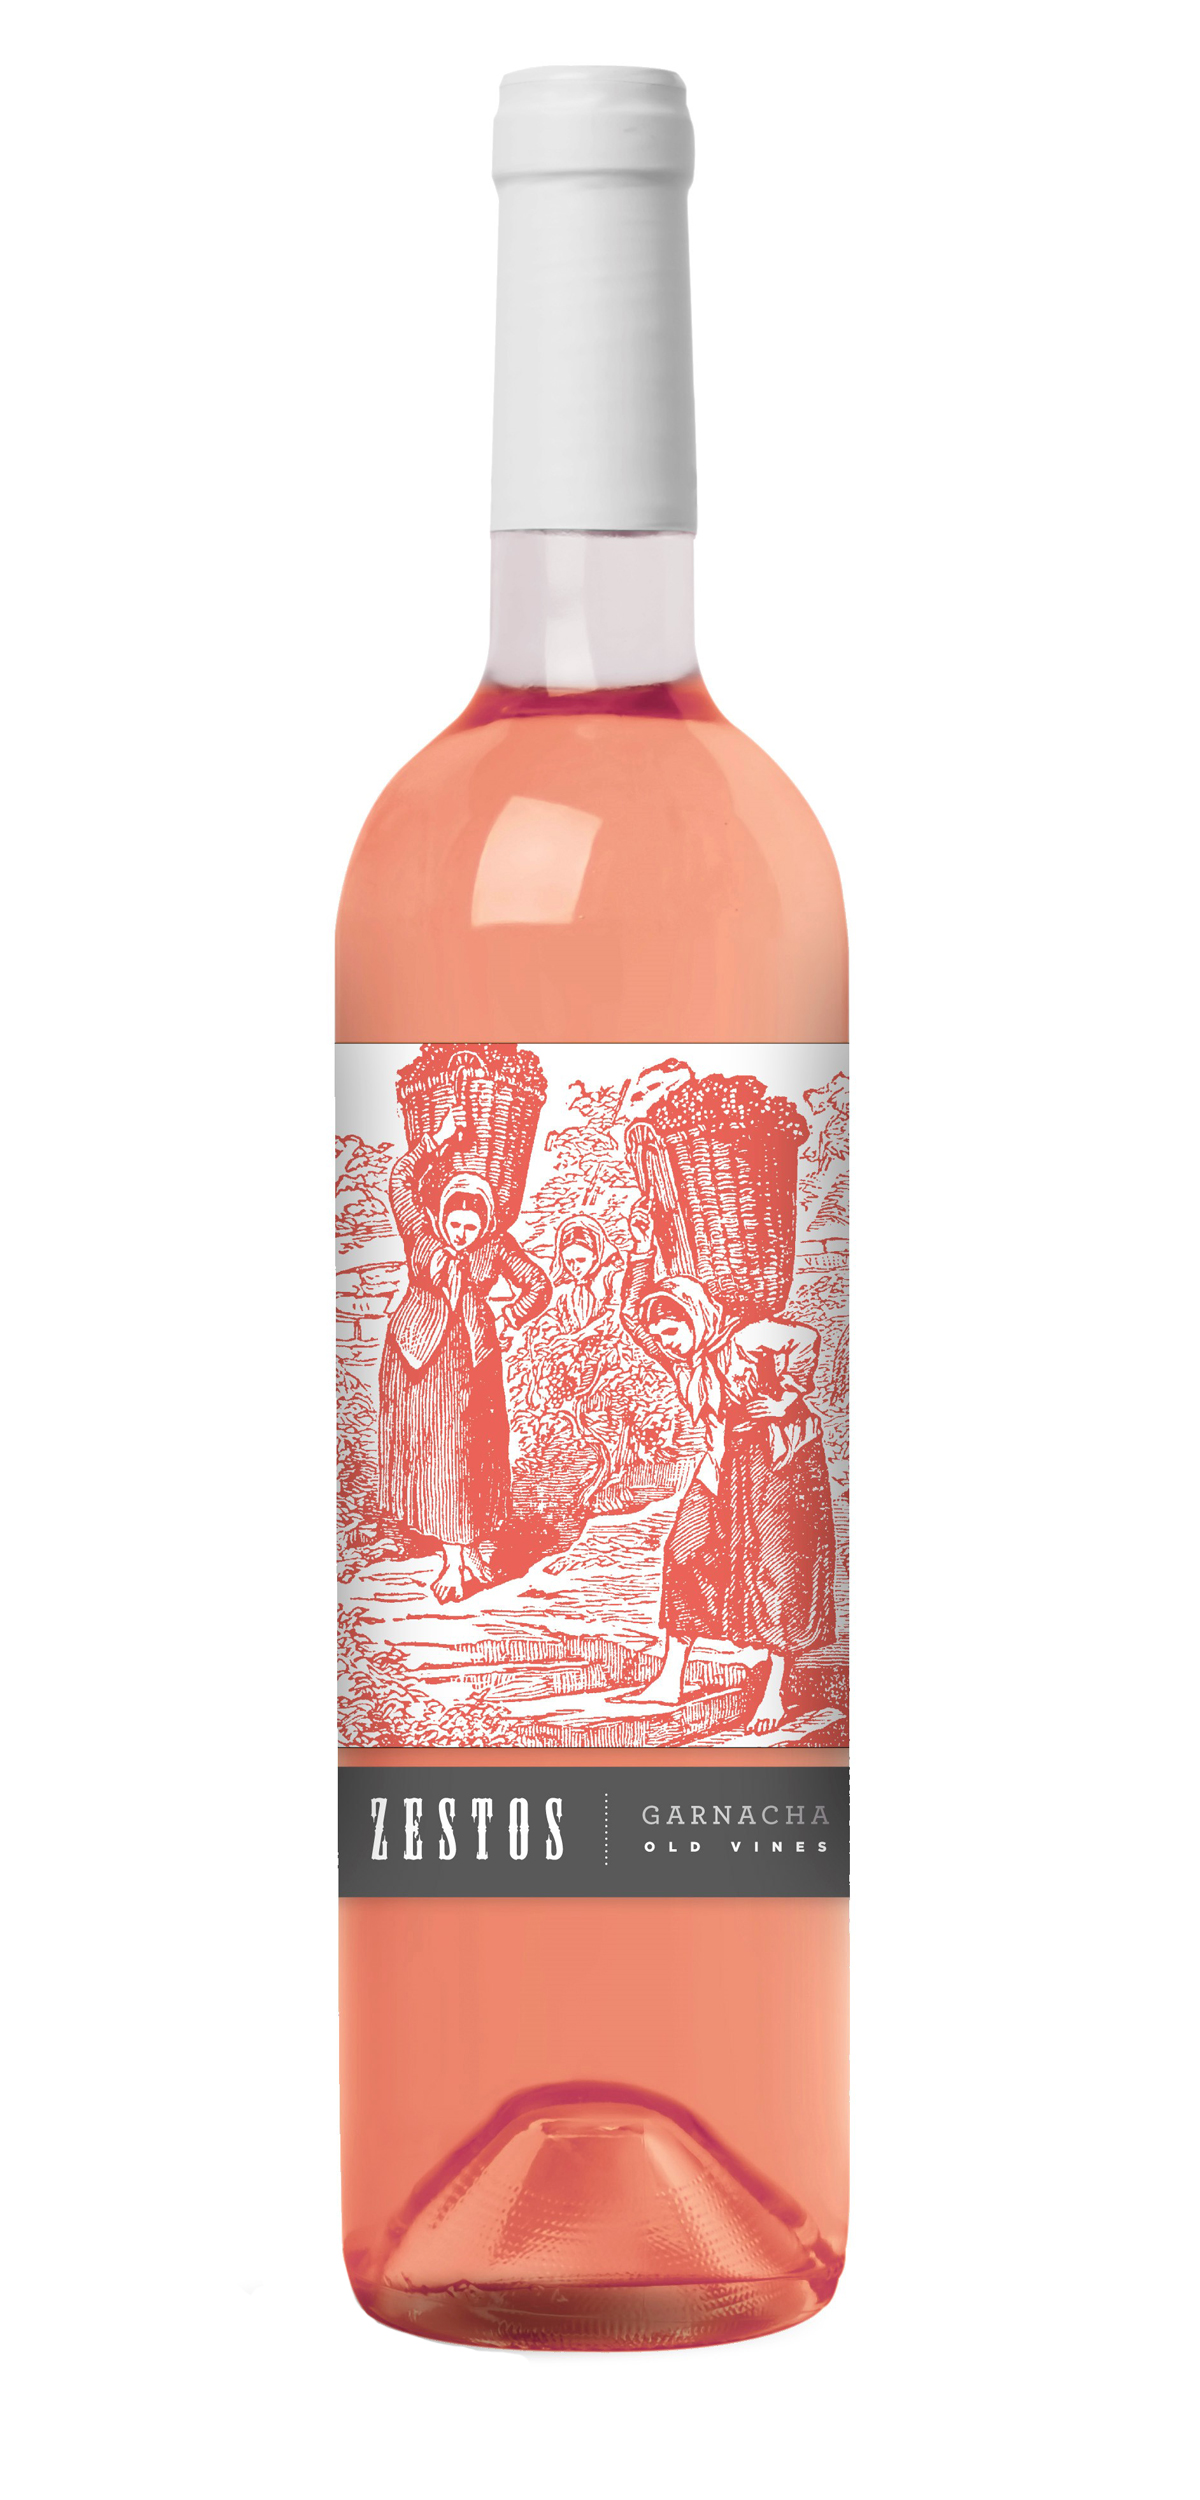 Zestos Garnacha Rosé wine bottle design